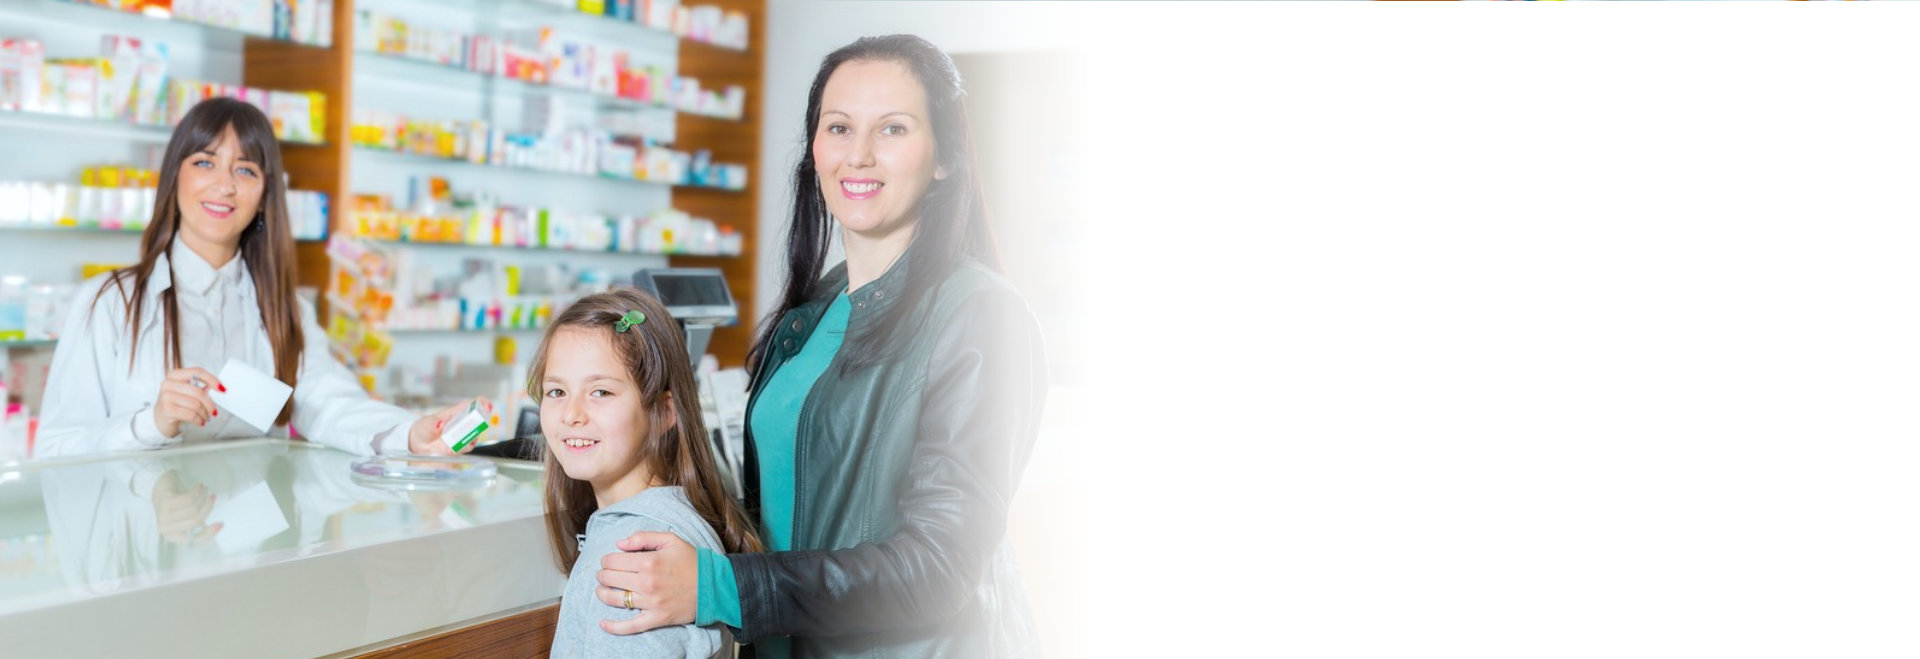 portrait of a customer and a pharmacist